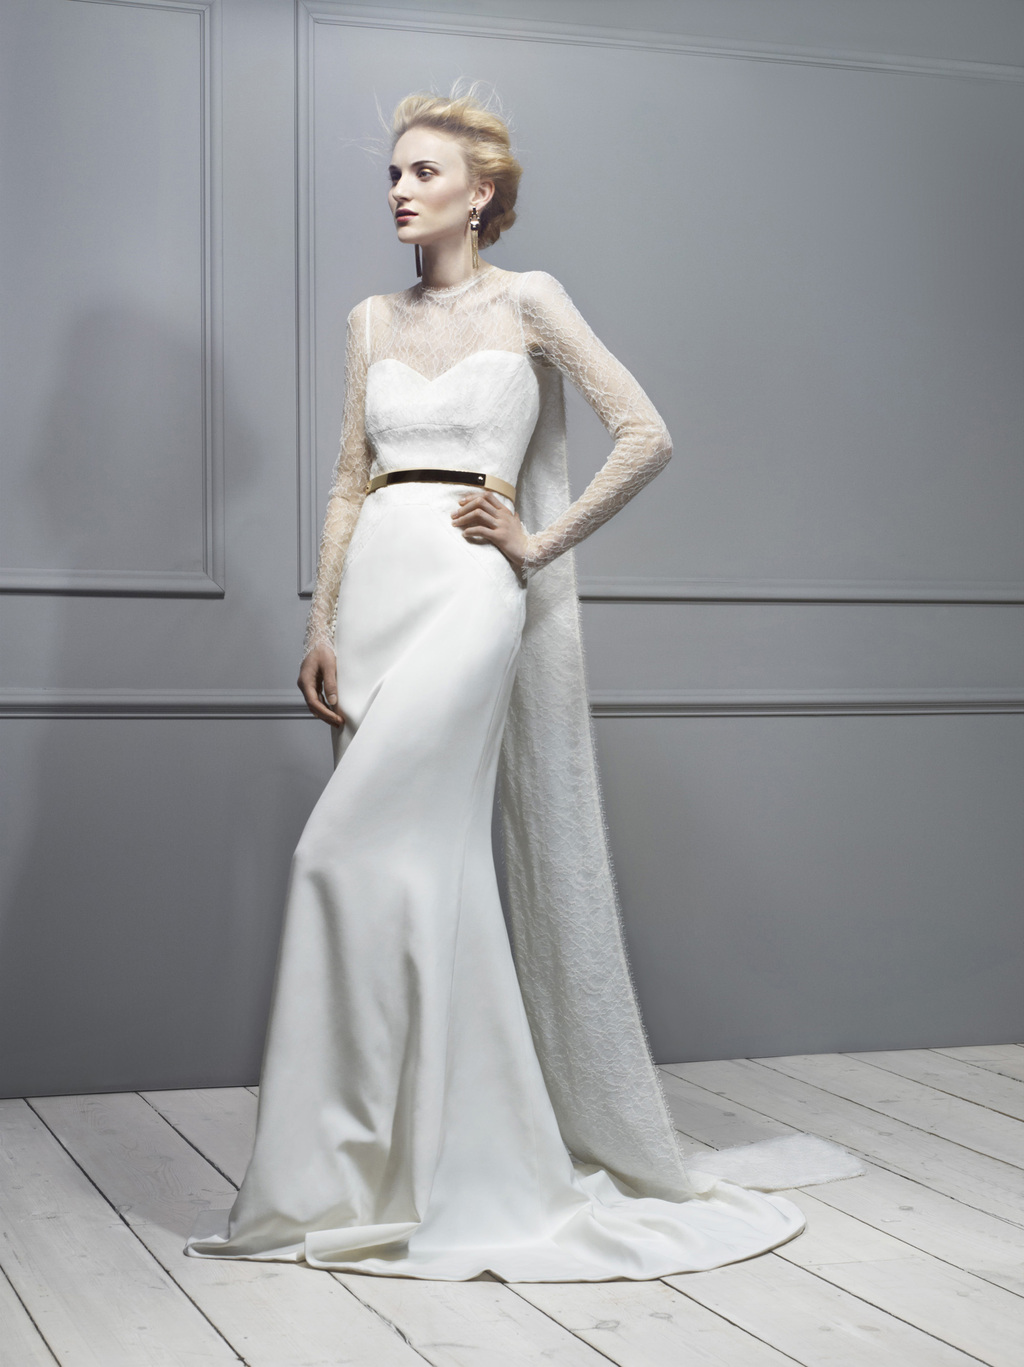 Berardi wedding dress 2013 exclusive bridal designer collection antonio berardi wedding dress 2013 exclusive bridal designer collection from net a porter ombrellifo Image collections